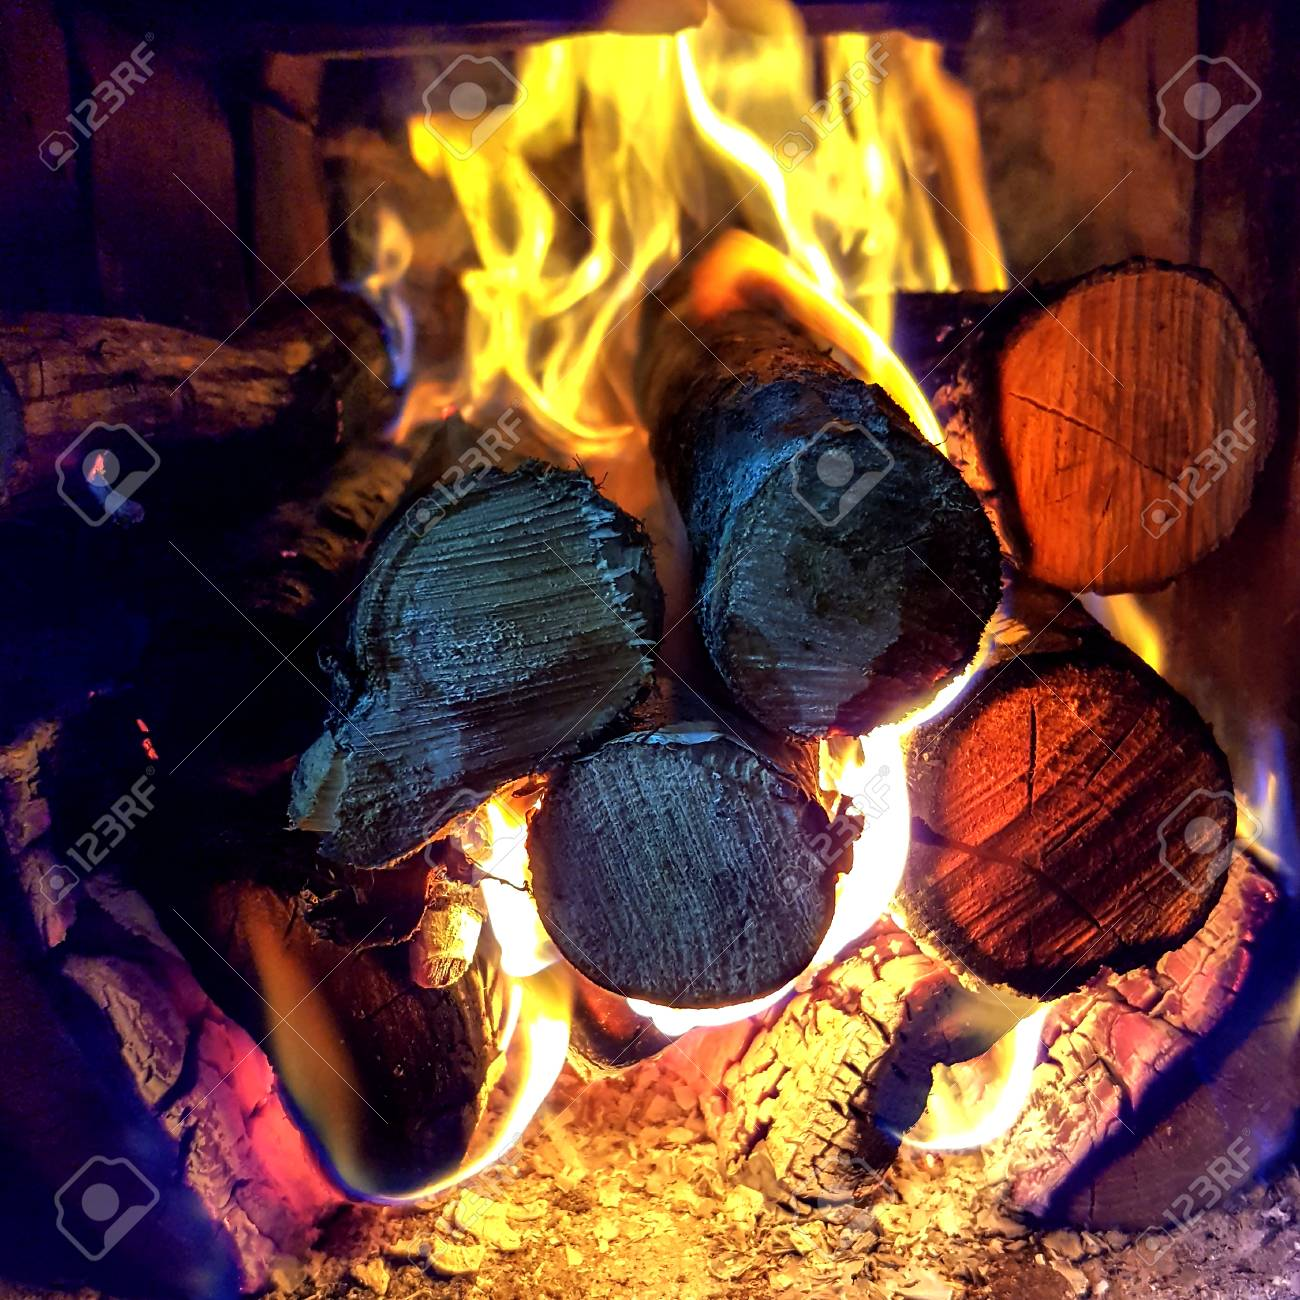 Fire Flame Burning Coal And Wood In Open Fireplace Charred Timber